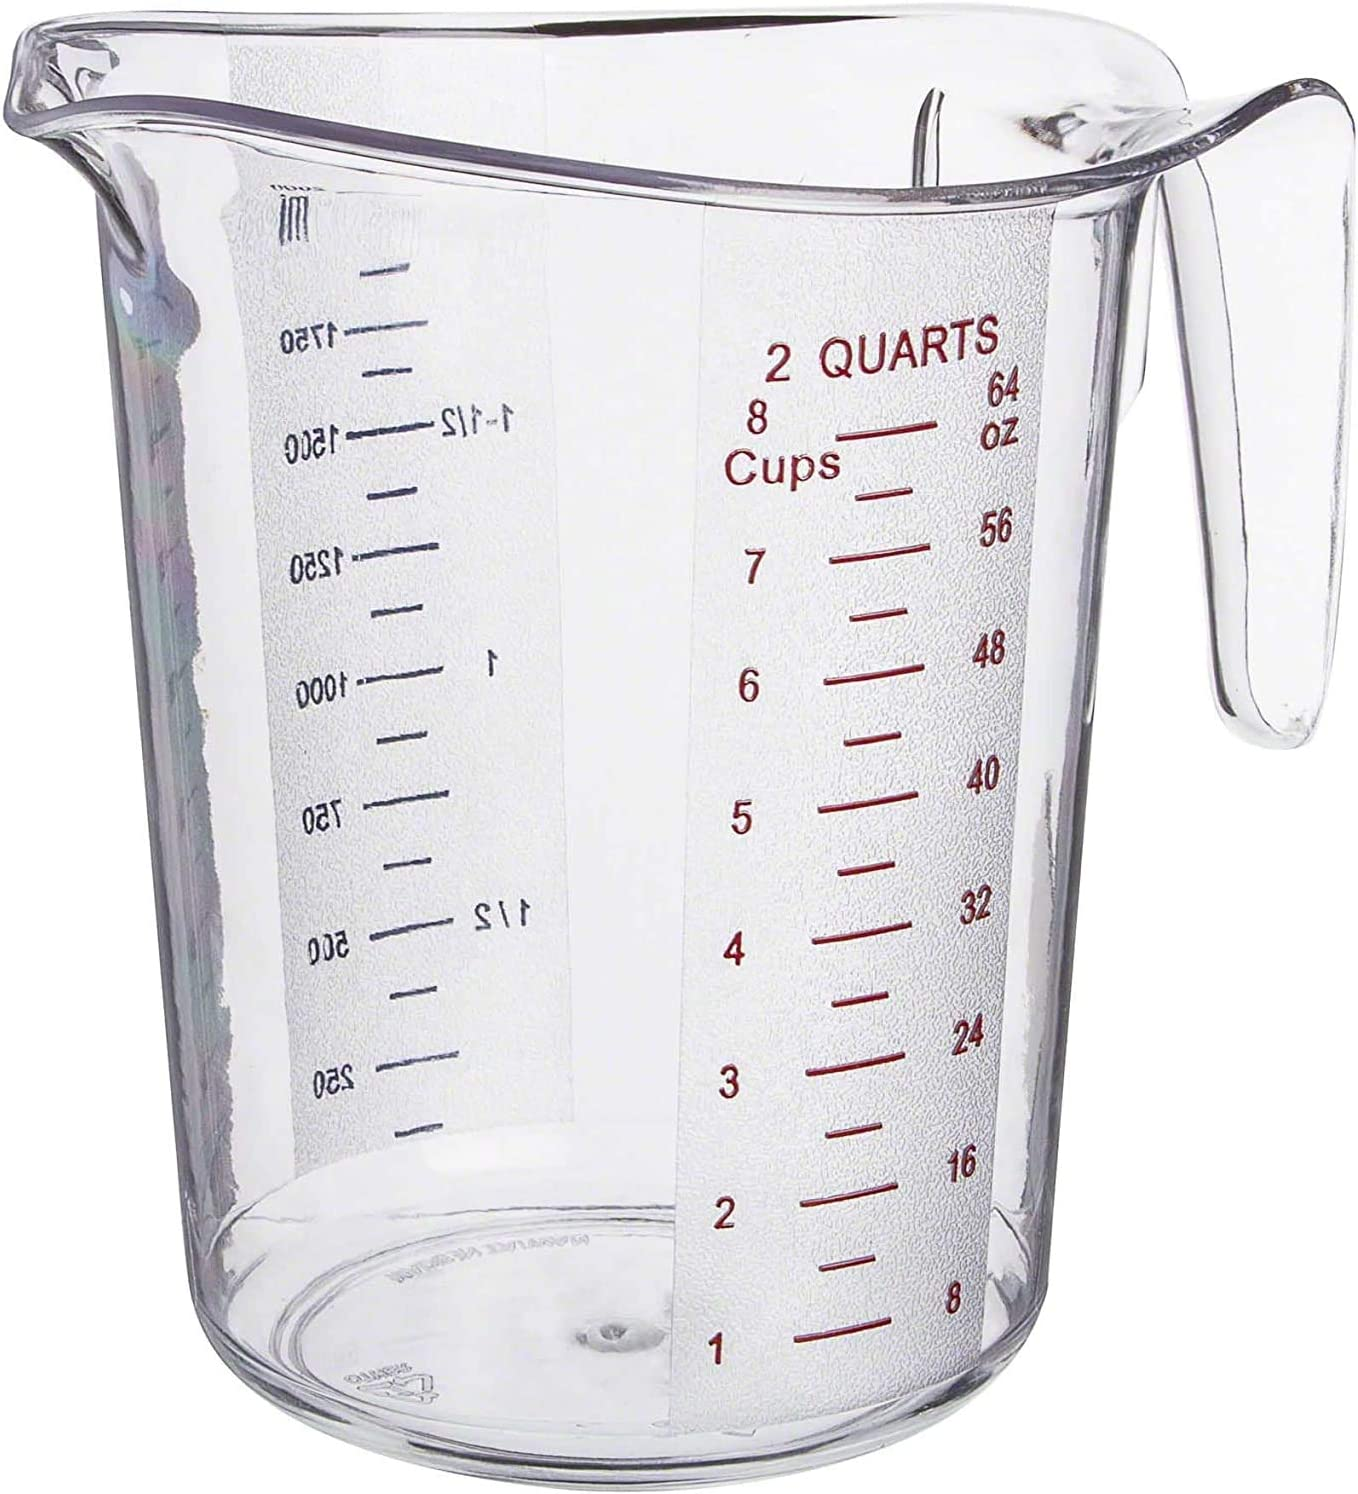 2 Qt. (8 Cups) Clear Plastic Measuring Cup with Gradations